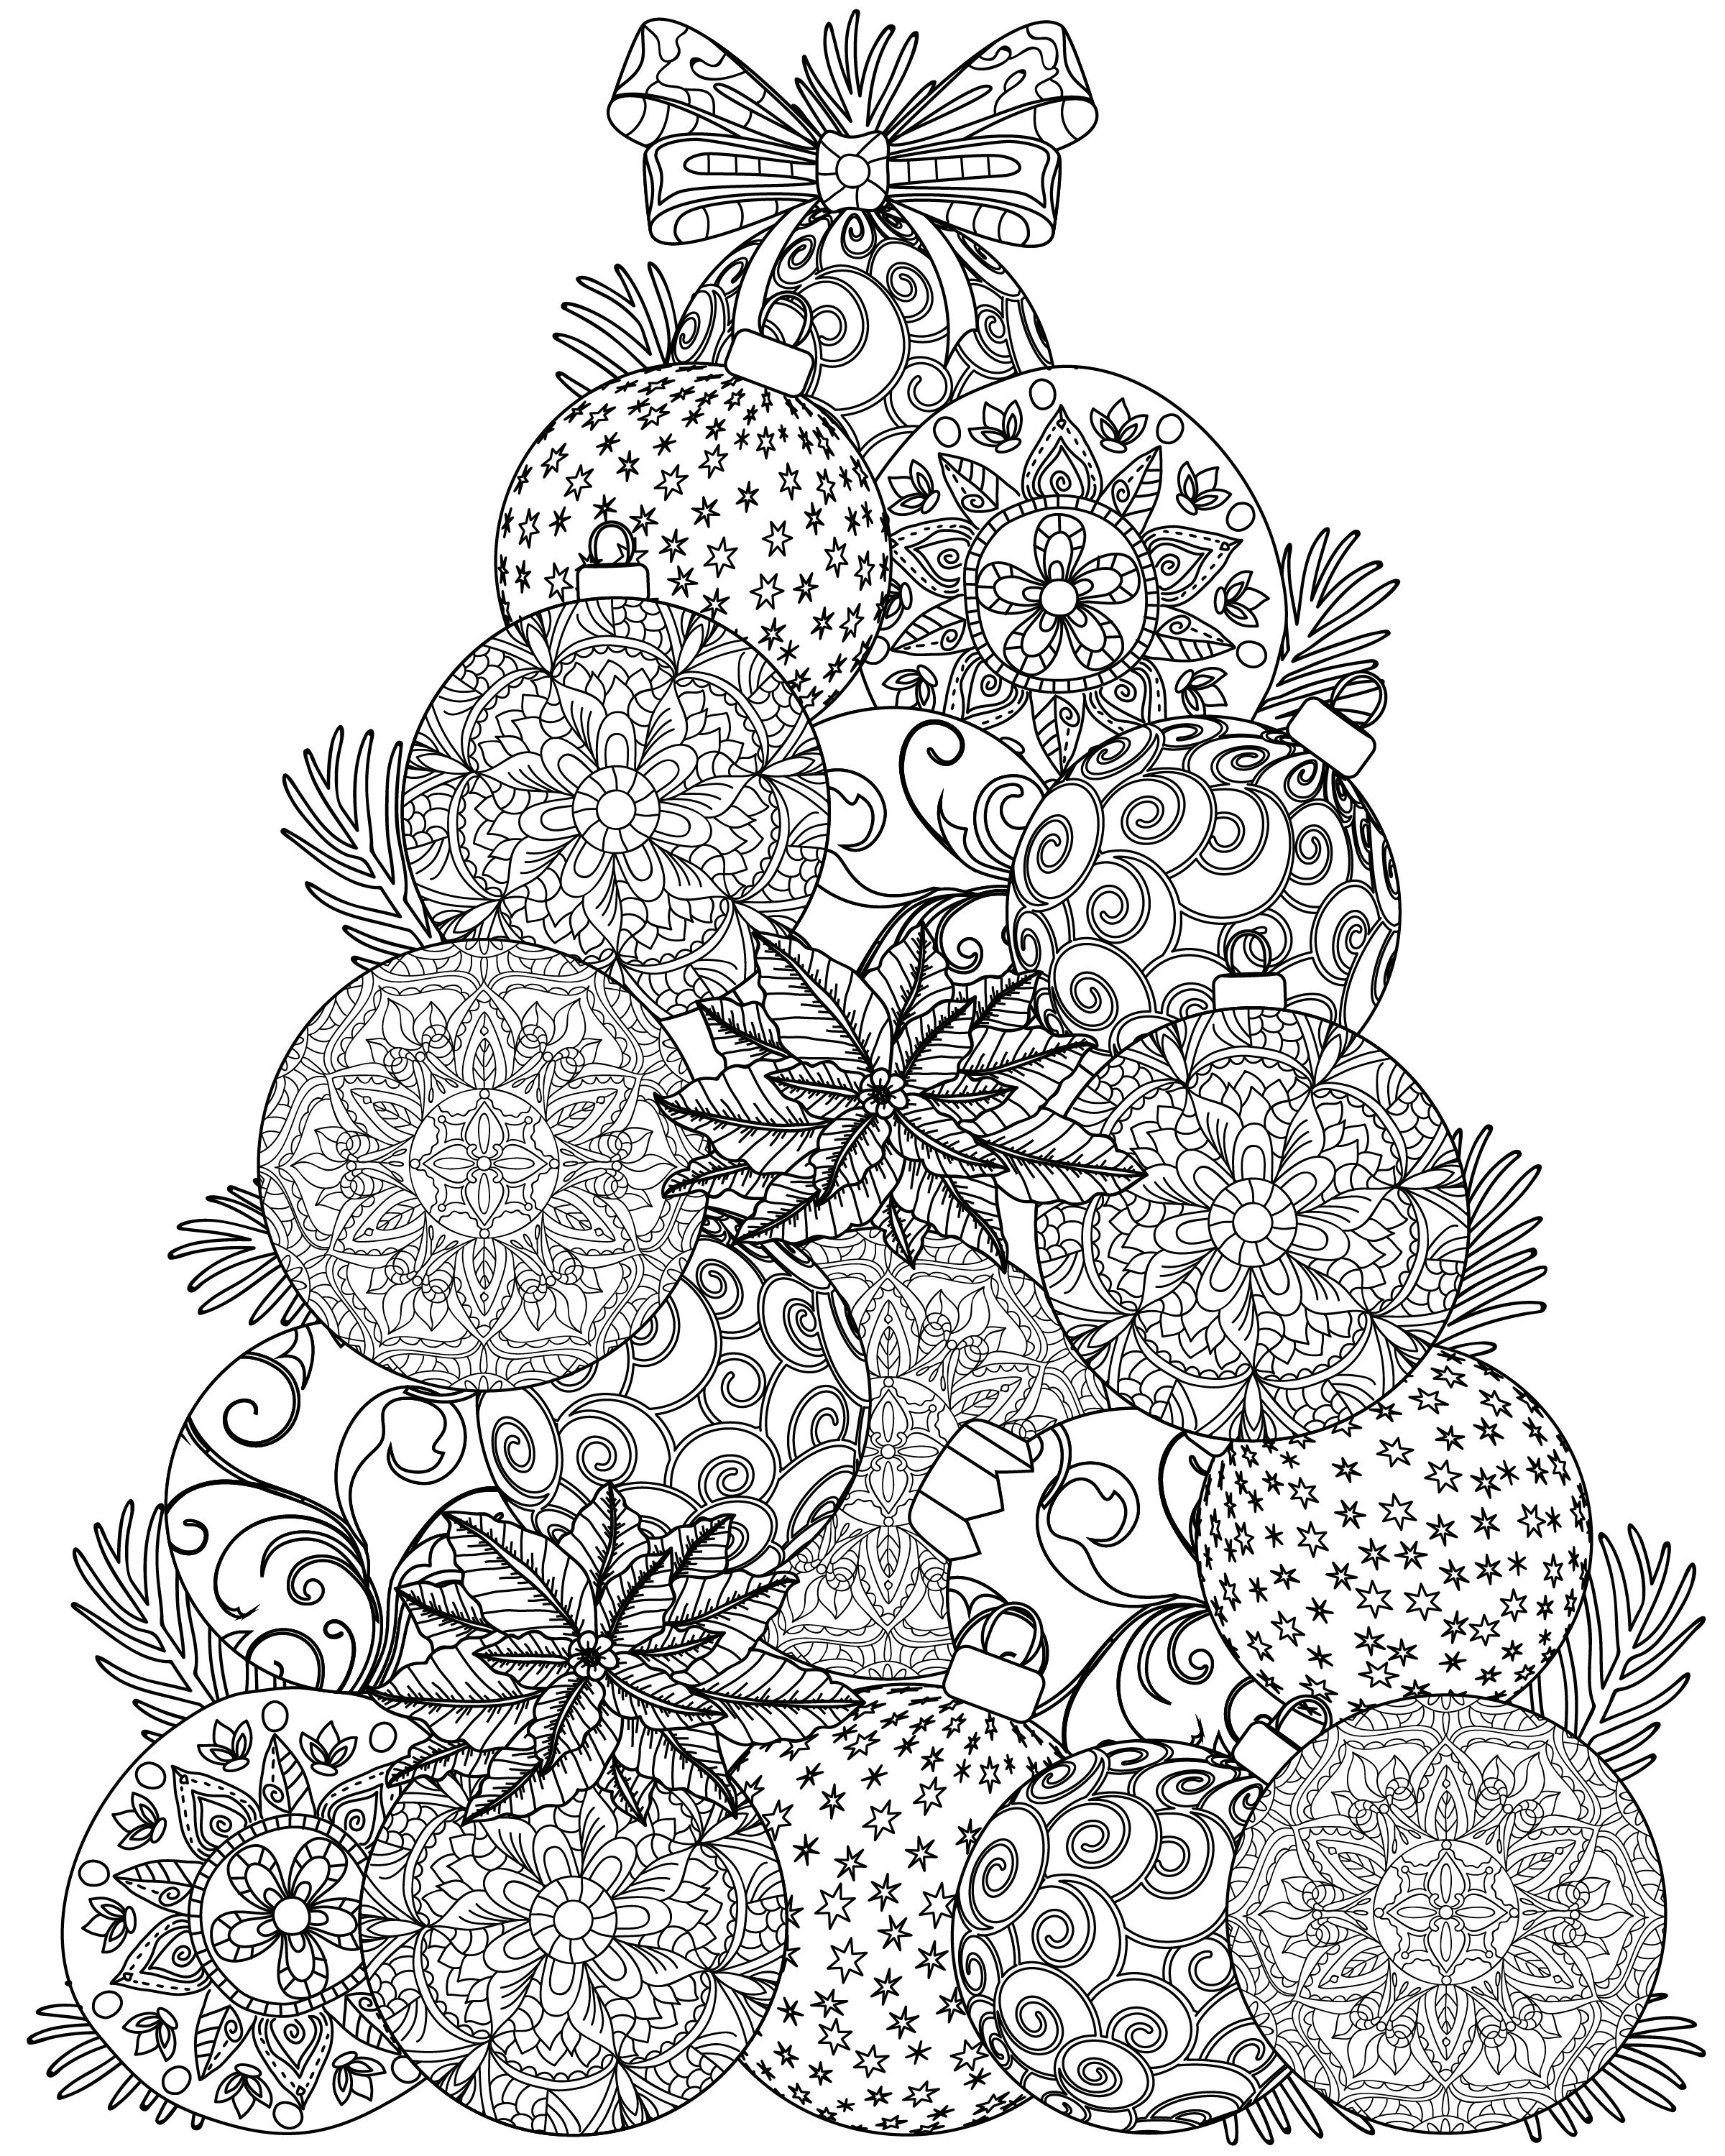 Let's get coloring girls! | Christmas coloring pages ...